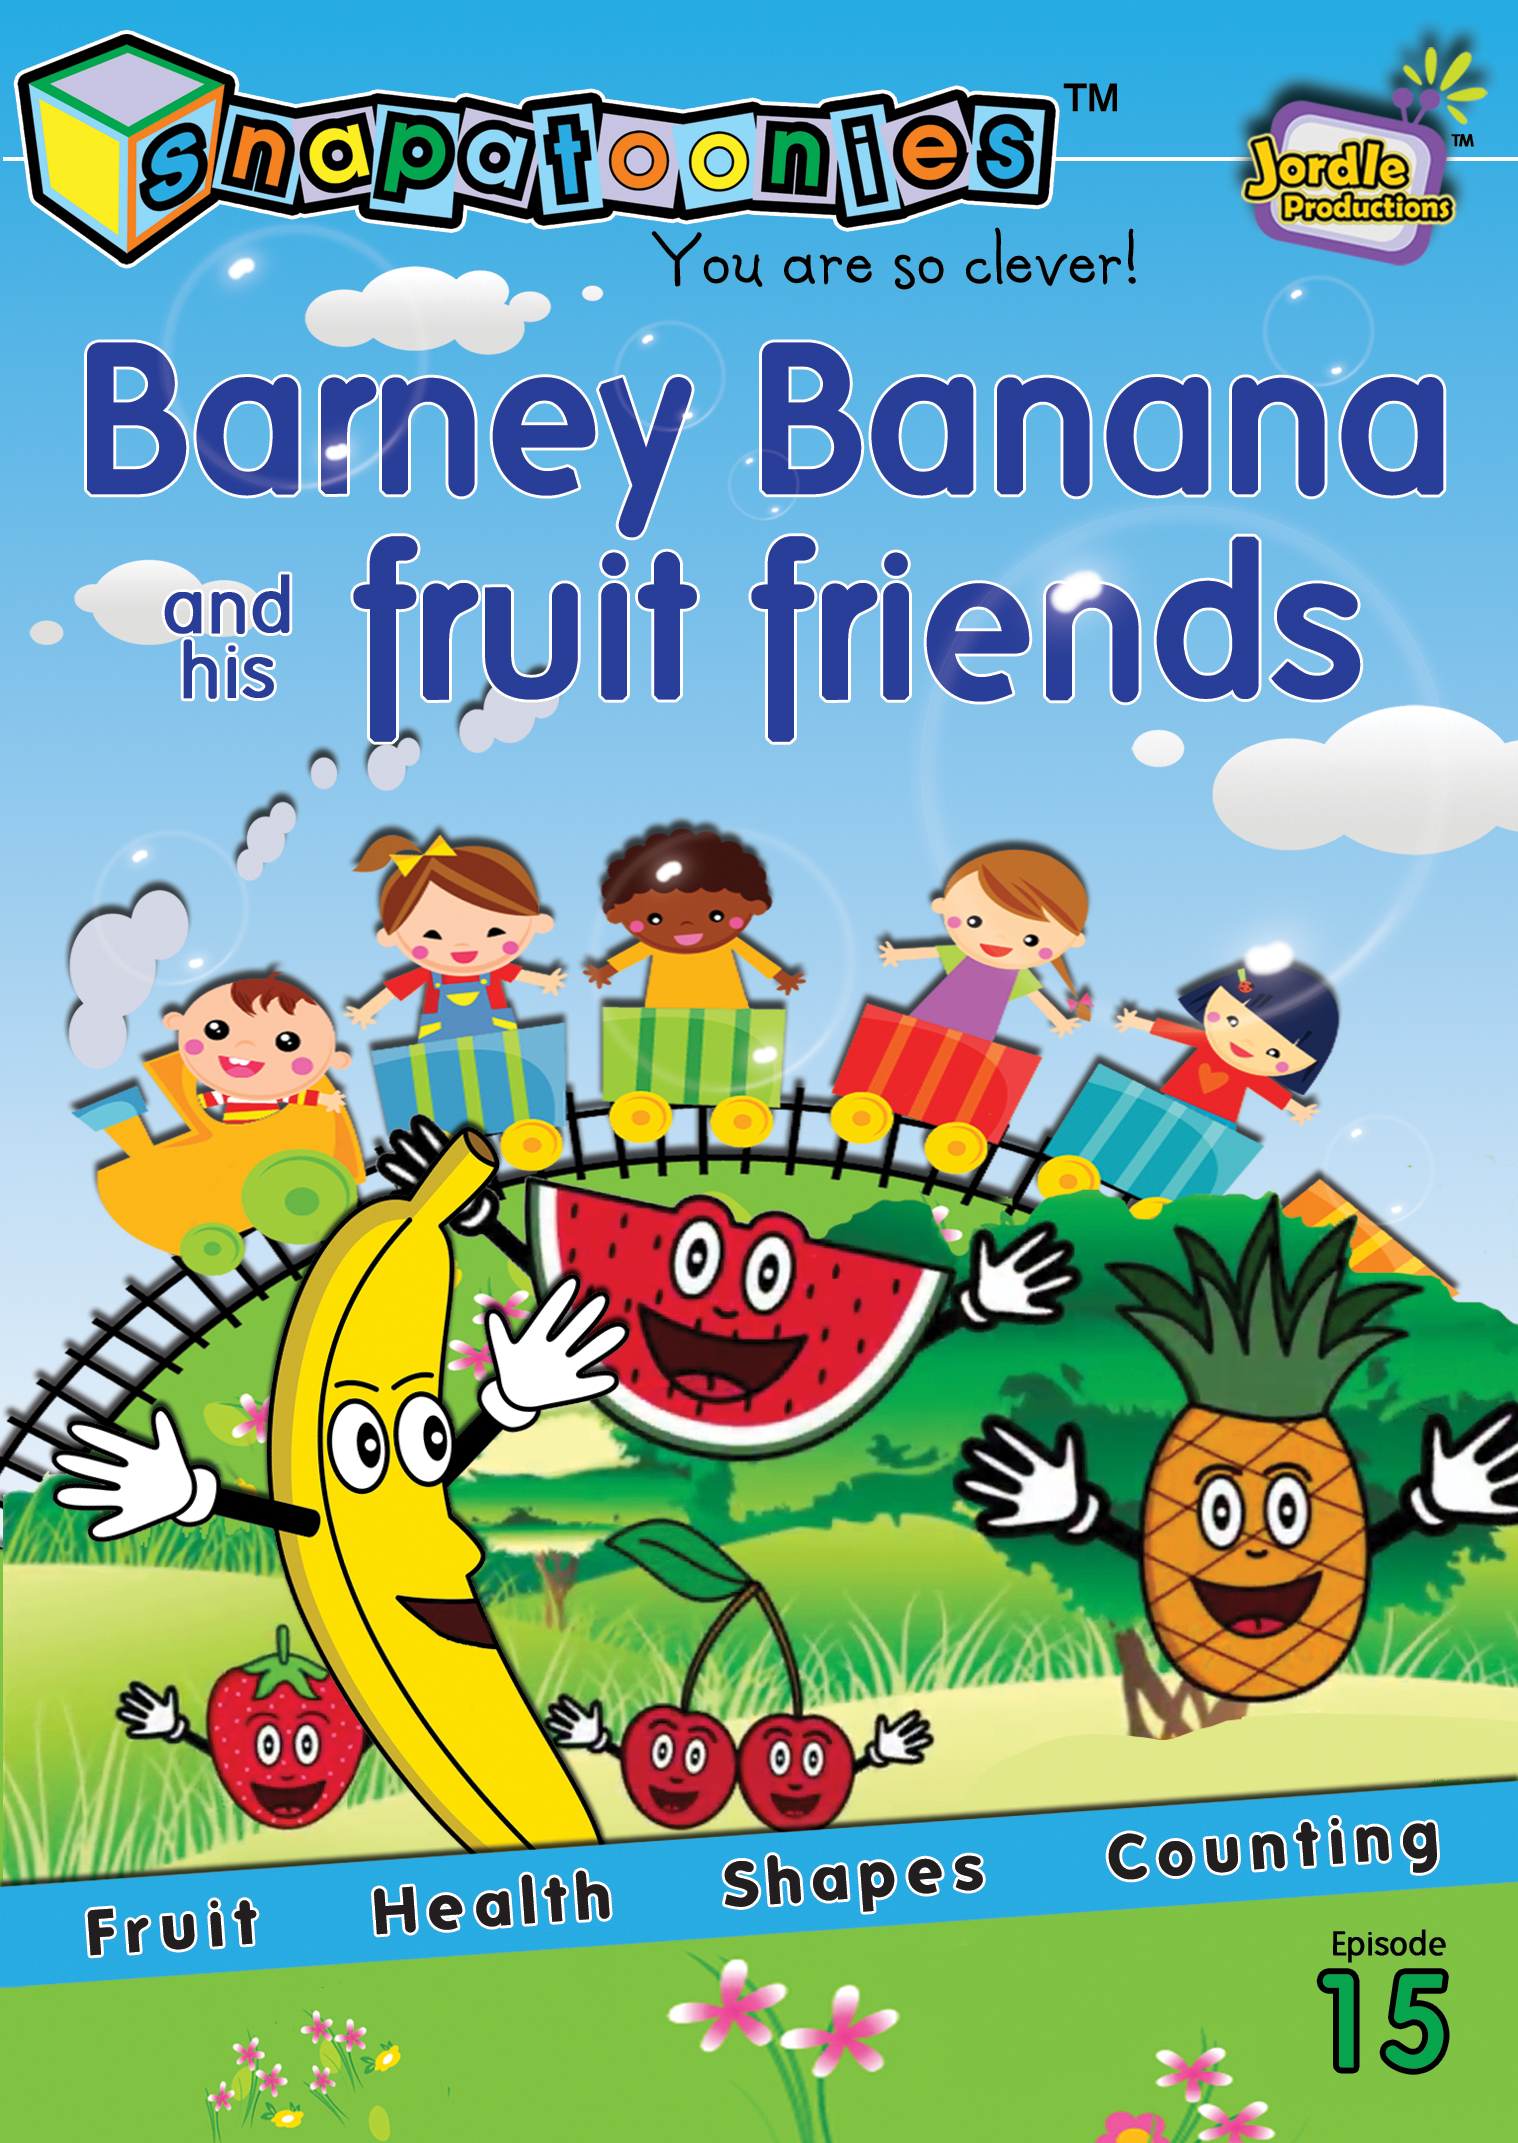 Snapatoonies Barney Banana and his fruit friends